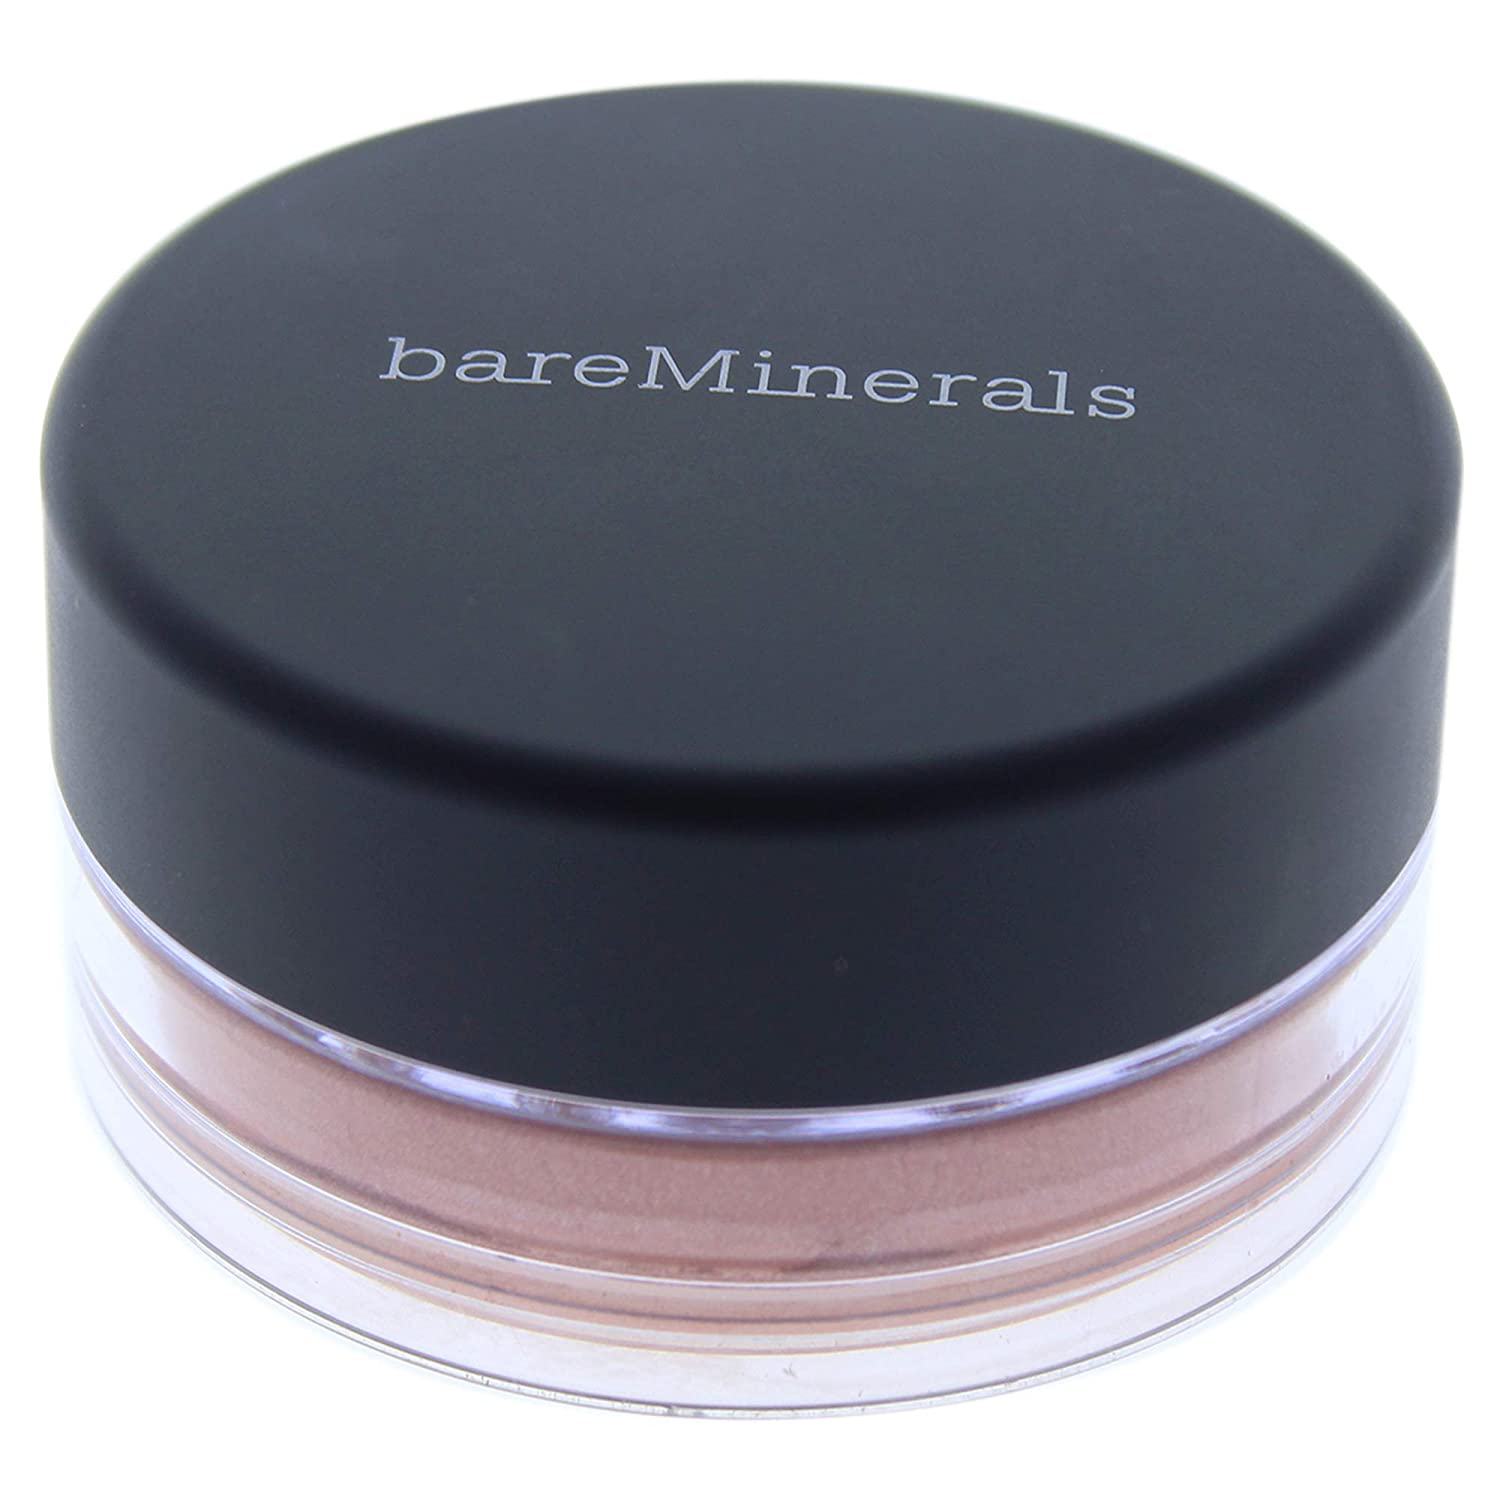 Bareminerals Blush - Joyous Jennifer By Bareminerals for Women - 0.03 Oz Blush, 0.03 Ounce